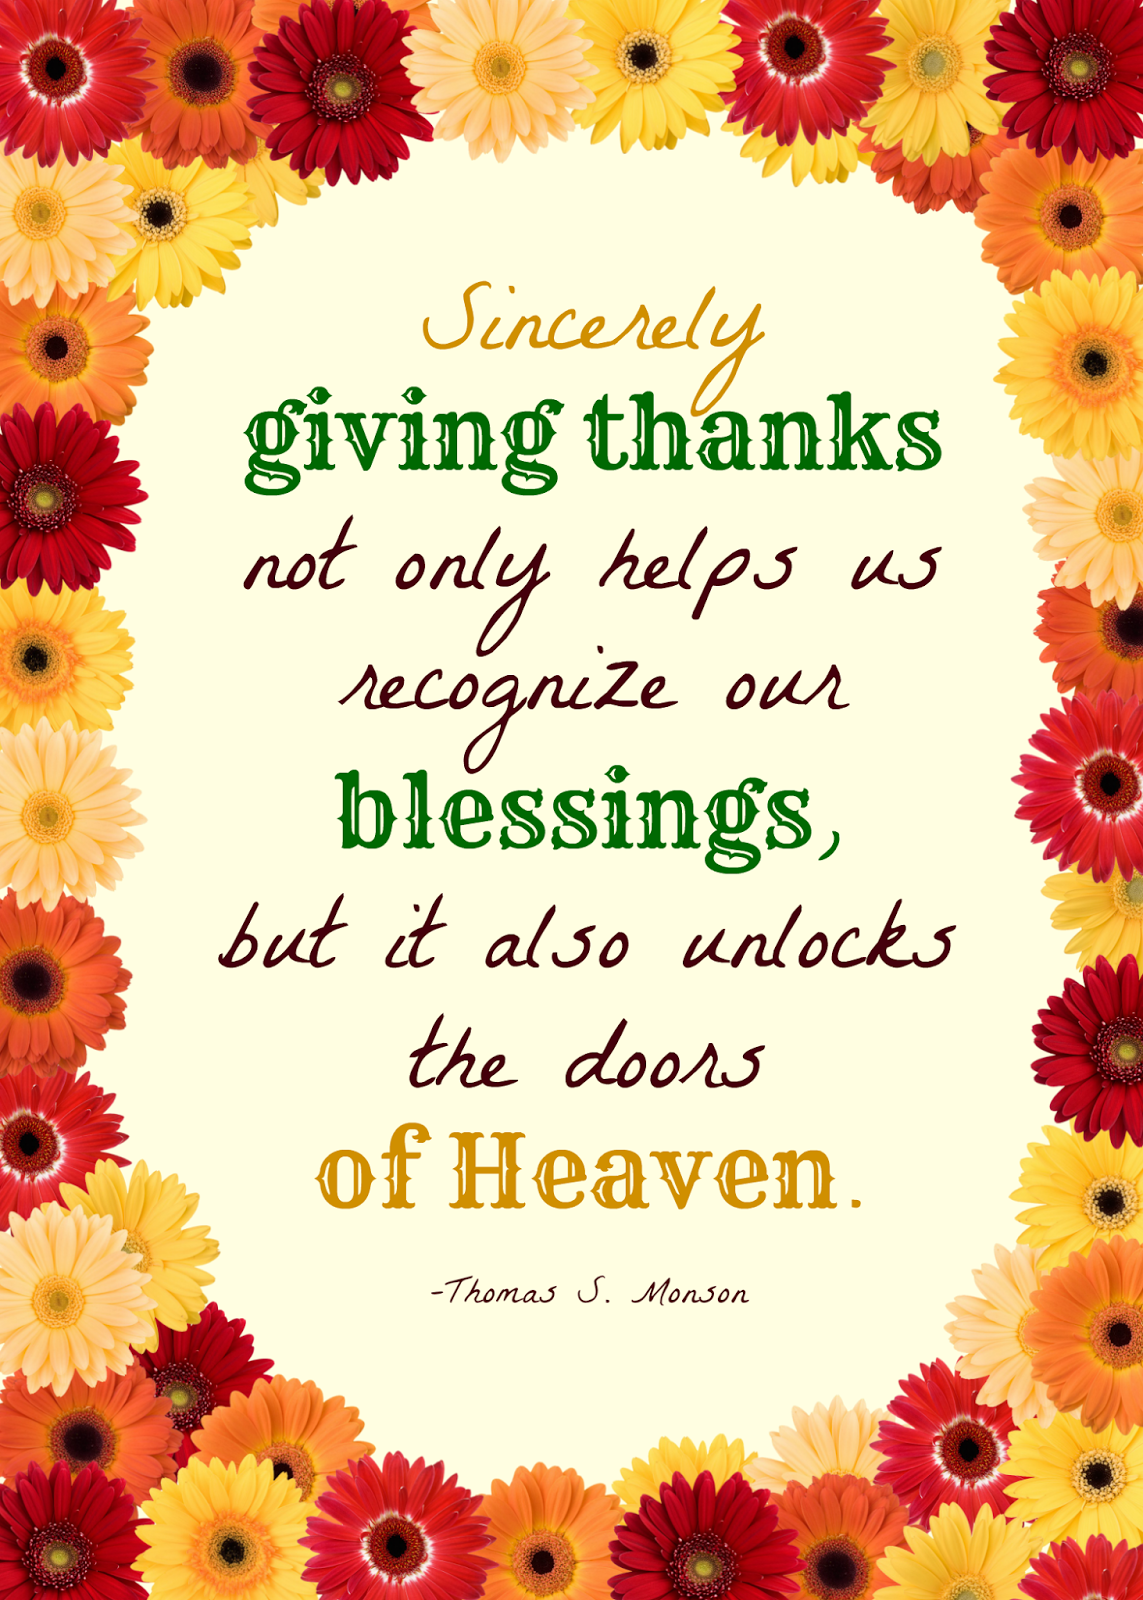 Sincerely giving thanks not only helps us recognize our blessings but it also unlocks the doors of Heaven.  -Thomas S.  sc 1 st  Pinterest & Sincerely giving thanks not only helps us recognize our blessings ... pezcame.com